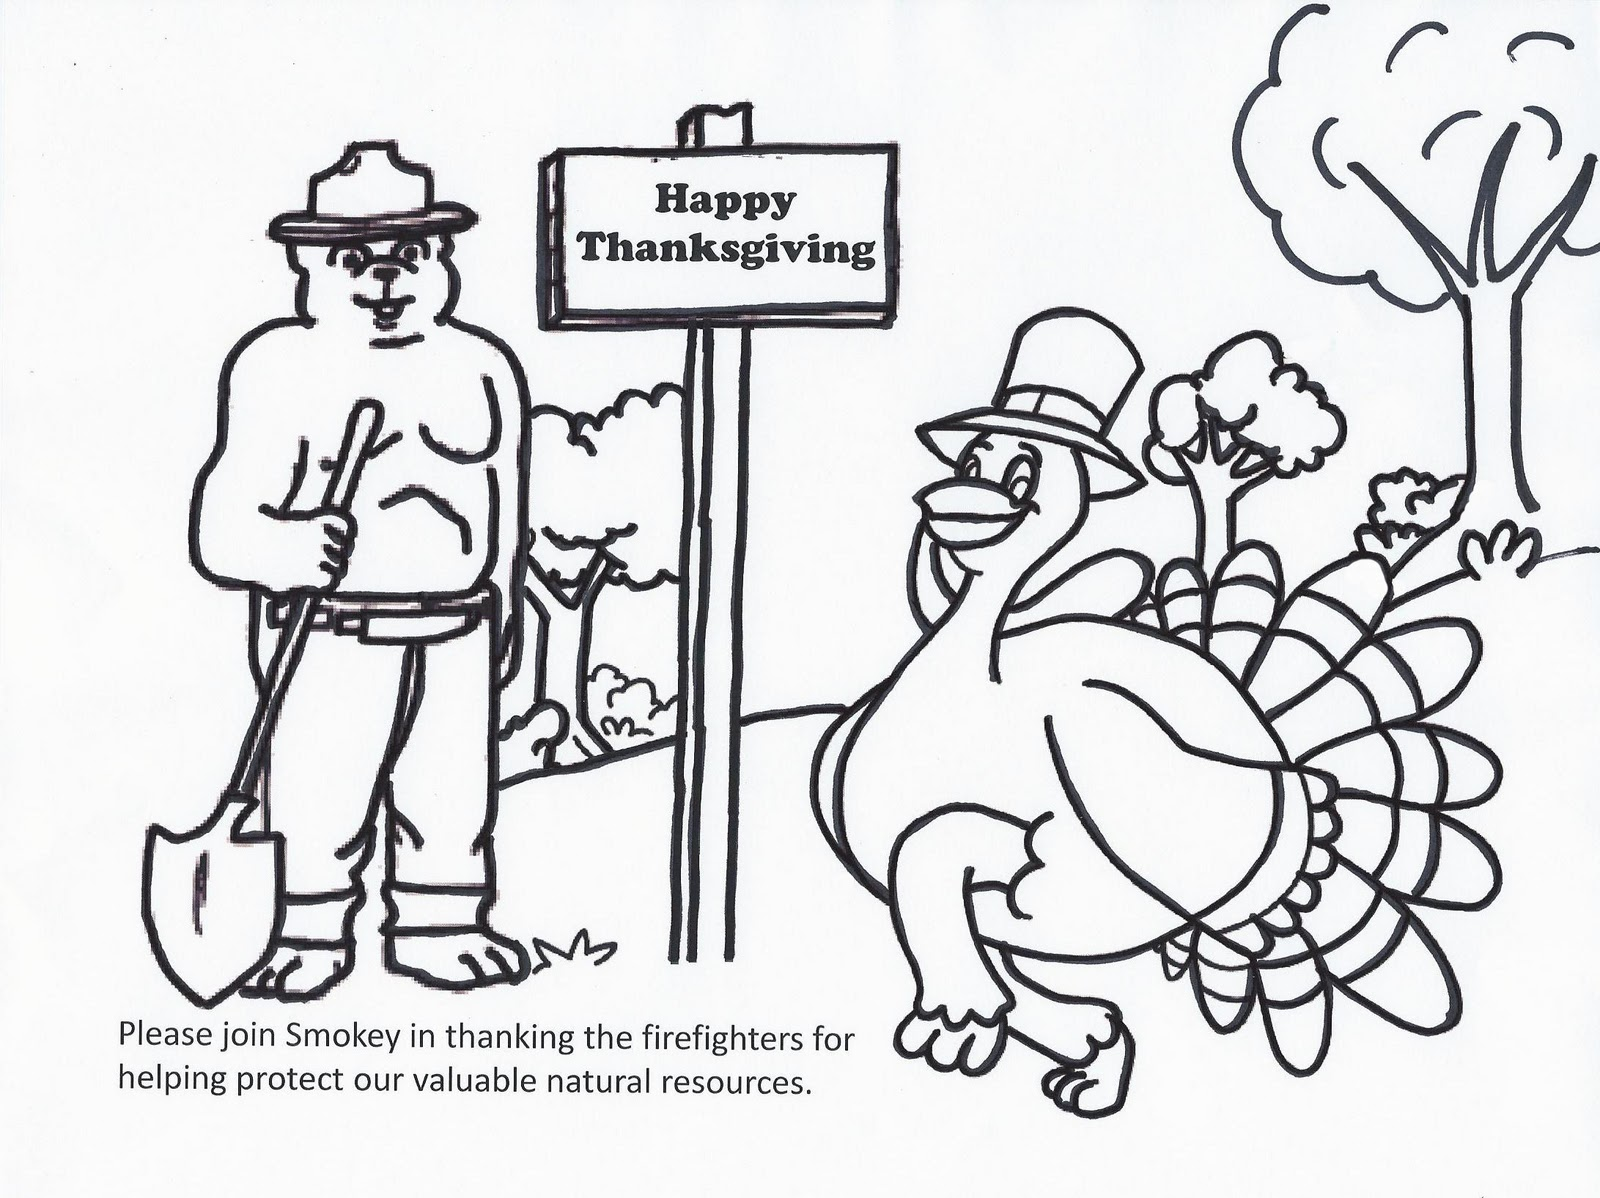 Virginia wildfire information and prevention smokey bear for Smokey the bear coloring pages